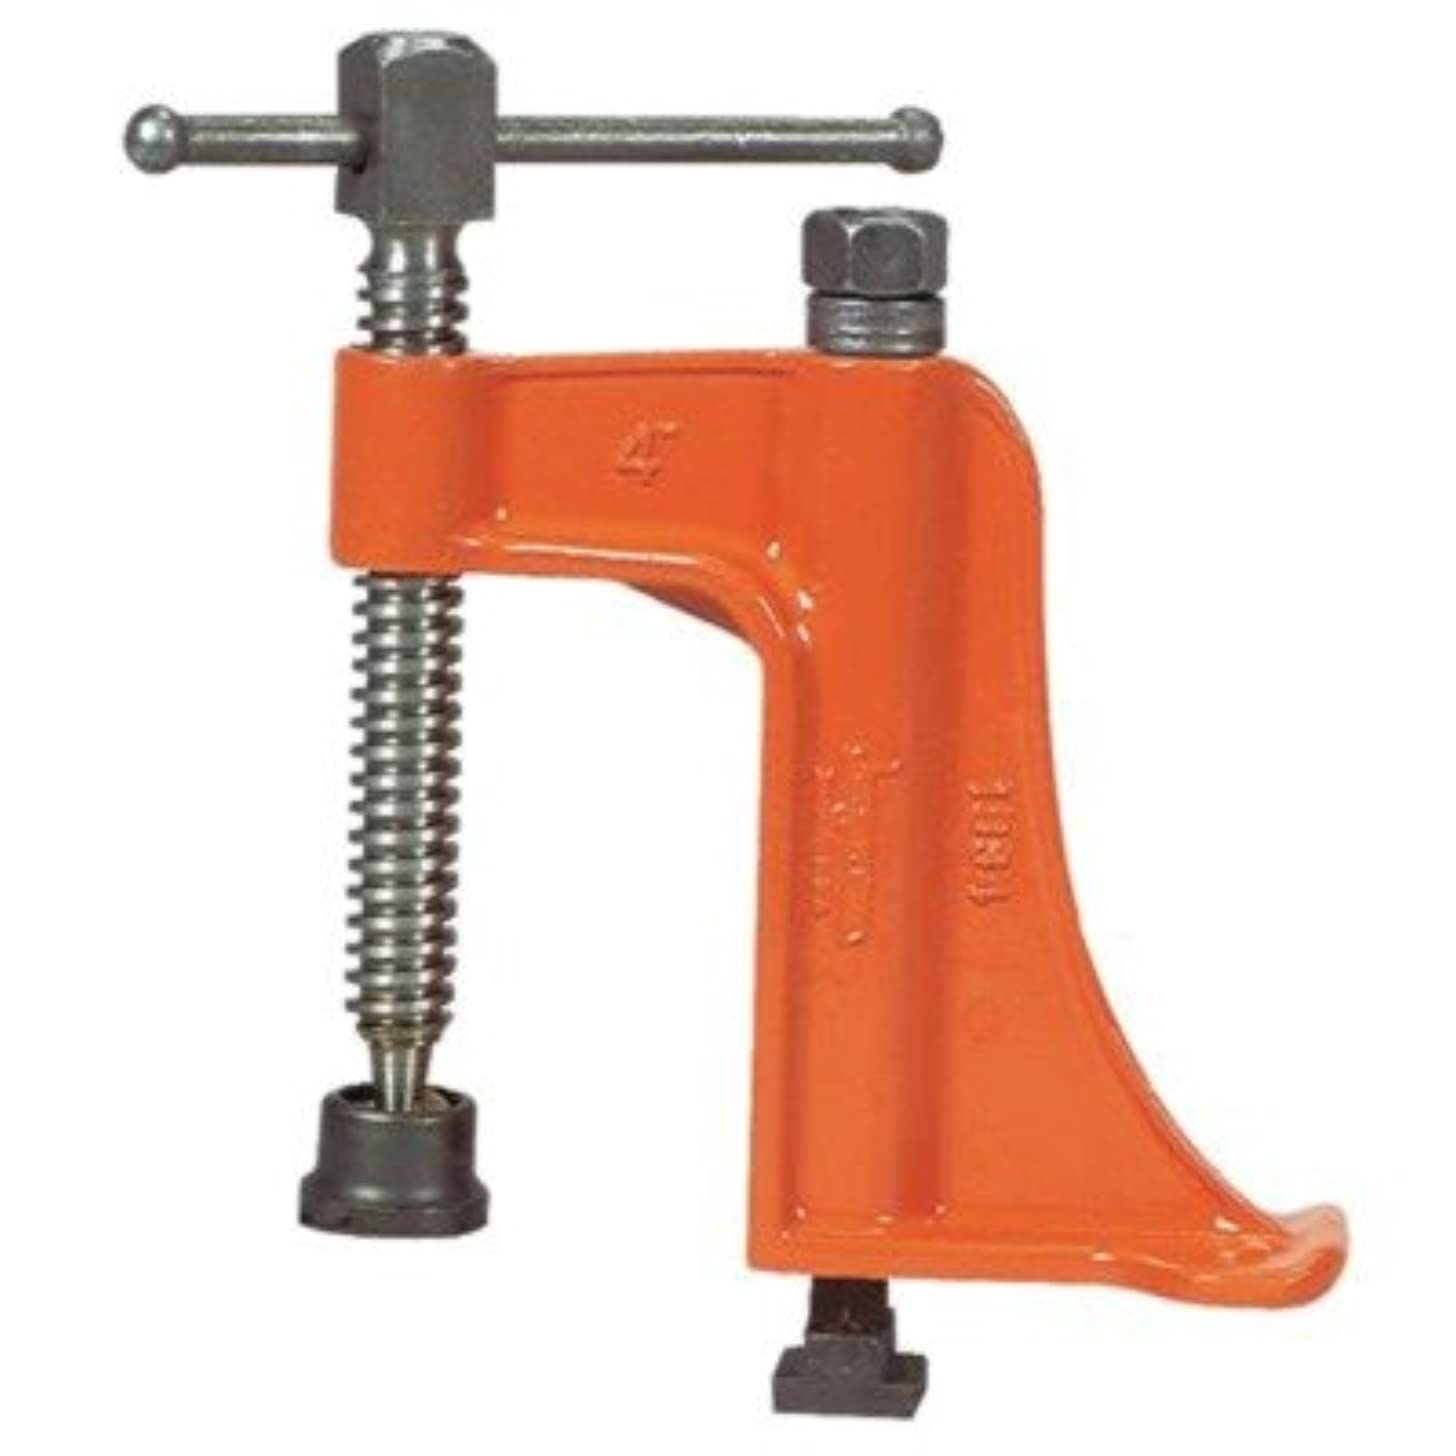 Jorgensen - Style No. 1800 Hold-Down Clamps 18340 4-1/4